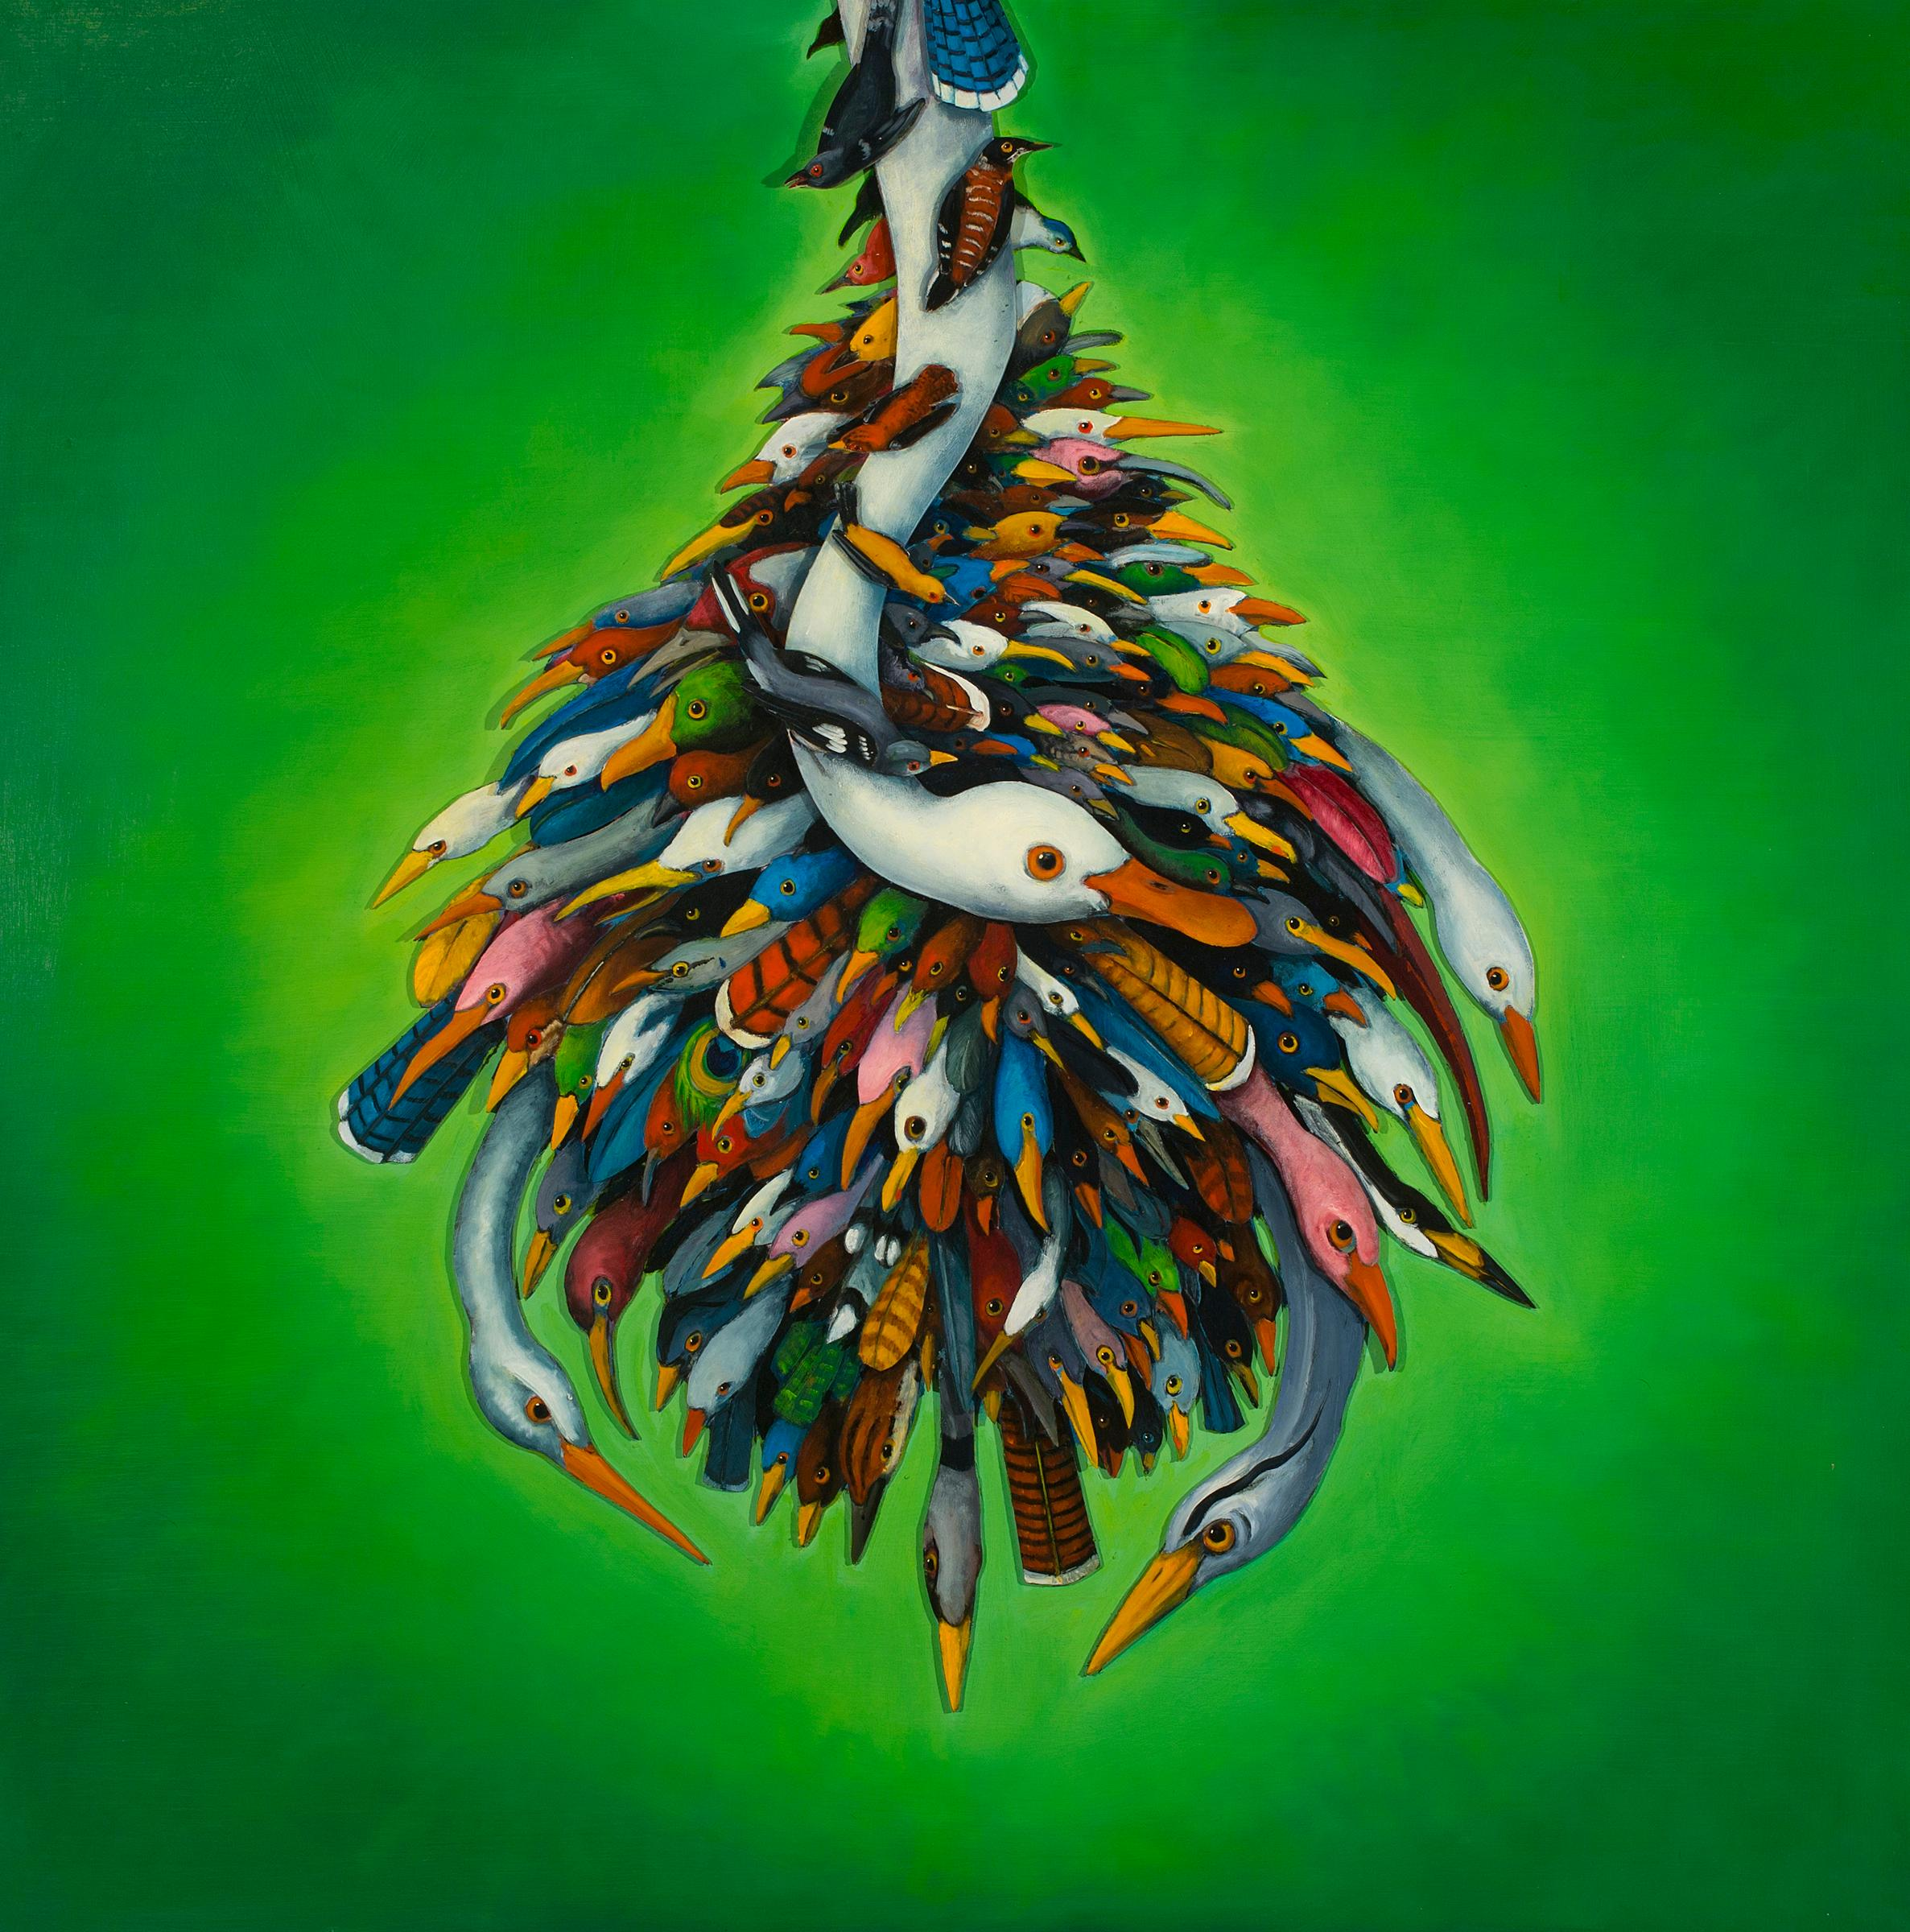 Plume, by Ed Smith, 3-Dimensional Green Abstract Bird Painting, Oil on canvas